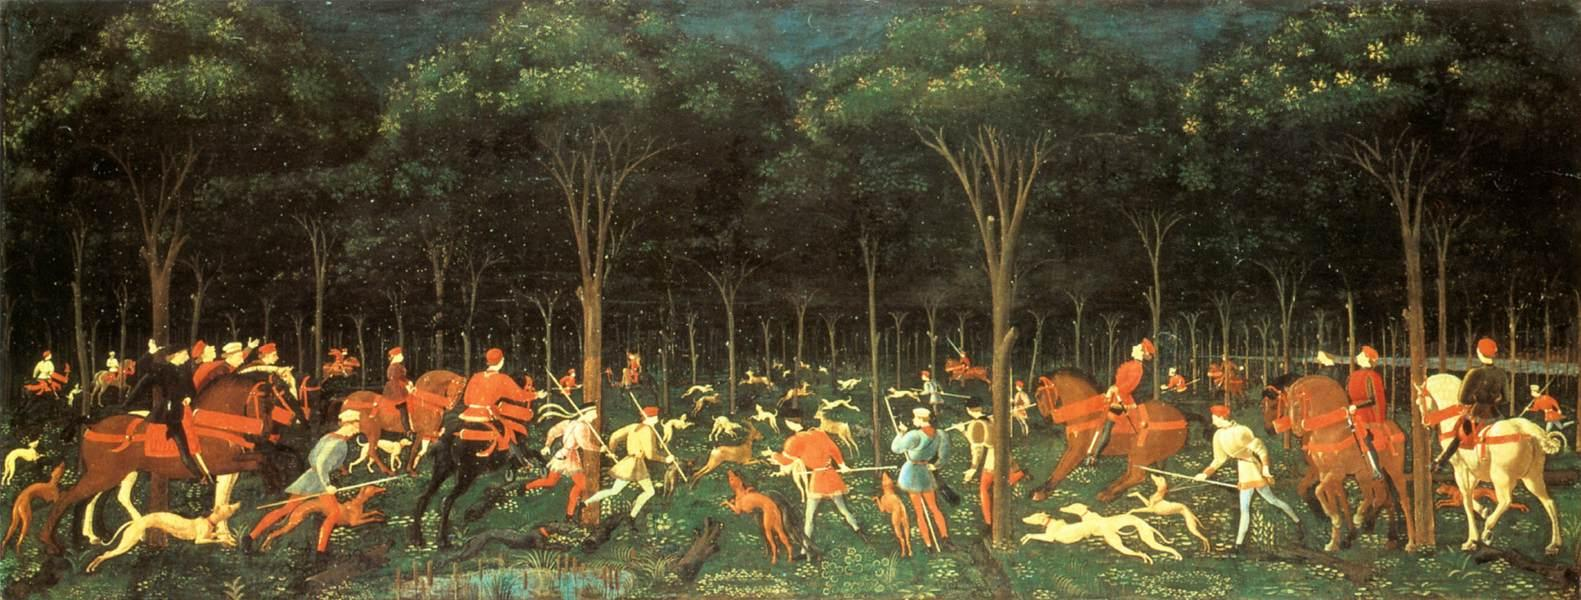 Paolo_Uccello_-_The_Hunt_in_the_Forest_-